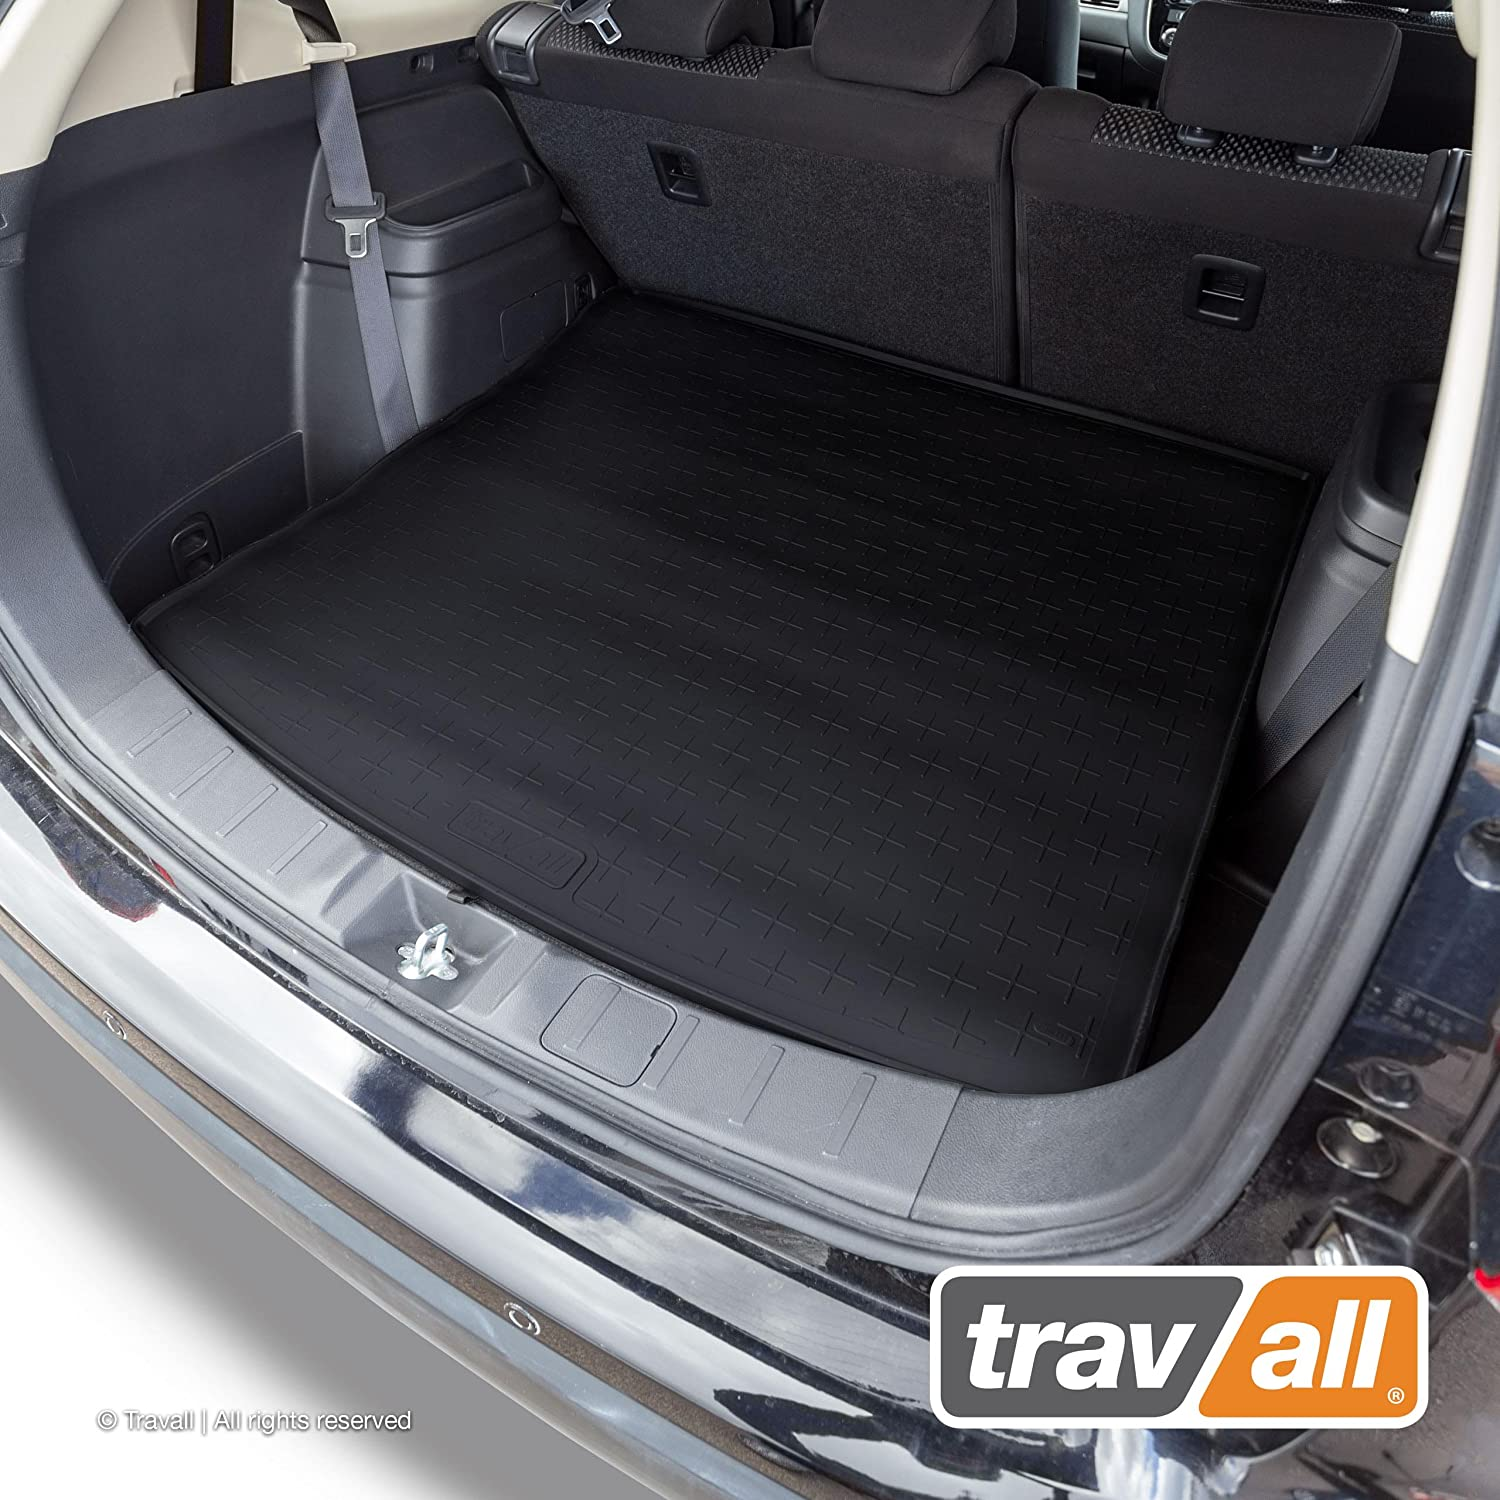 Travall Liner Tbm1113 Vehicle Specific Boot Liner With Anti Slip Coating Auto